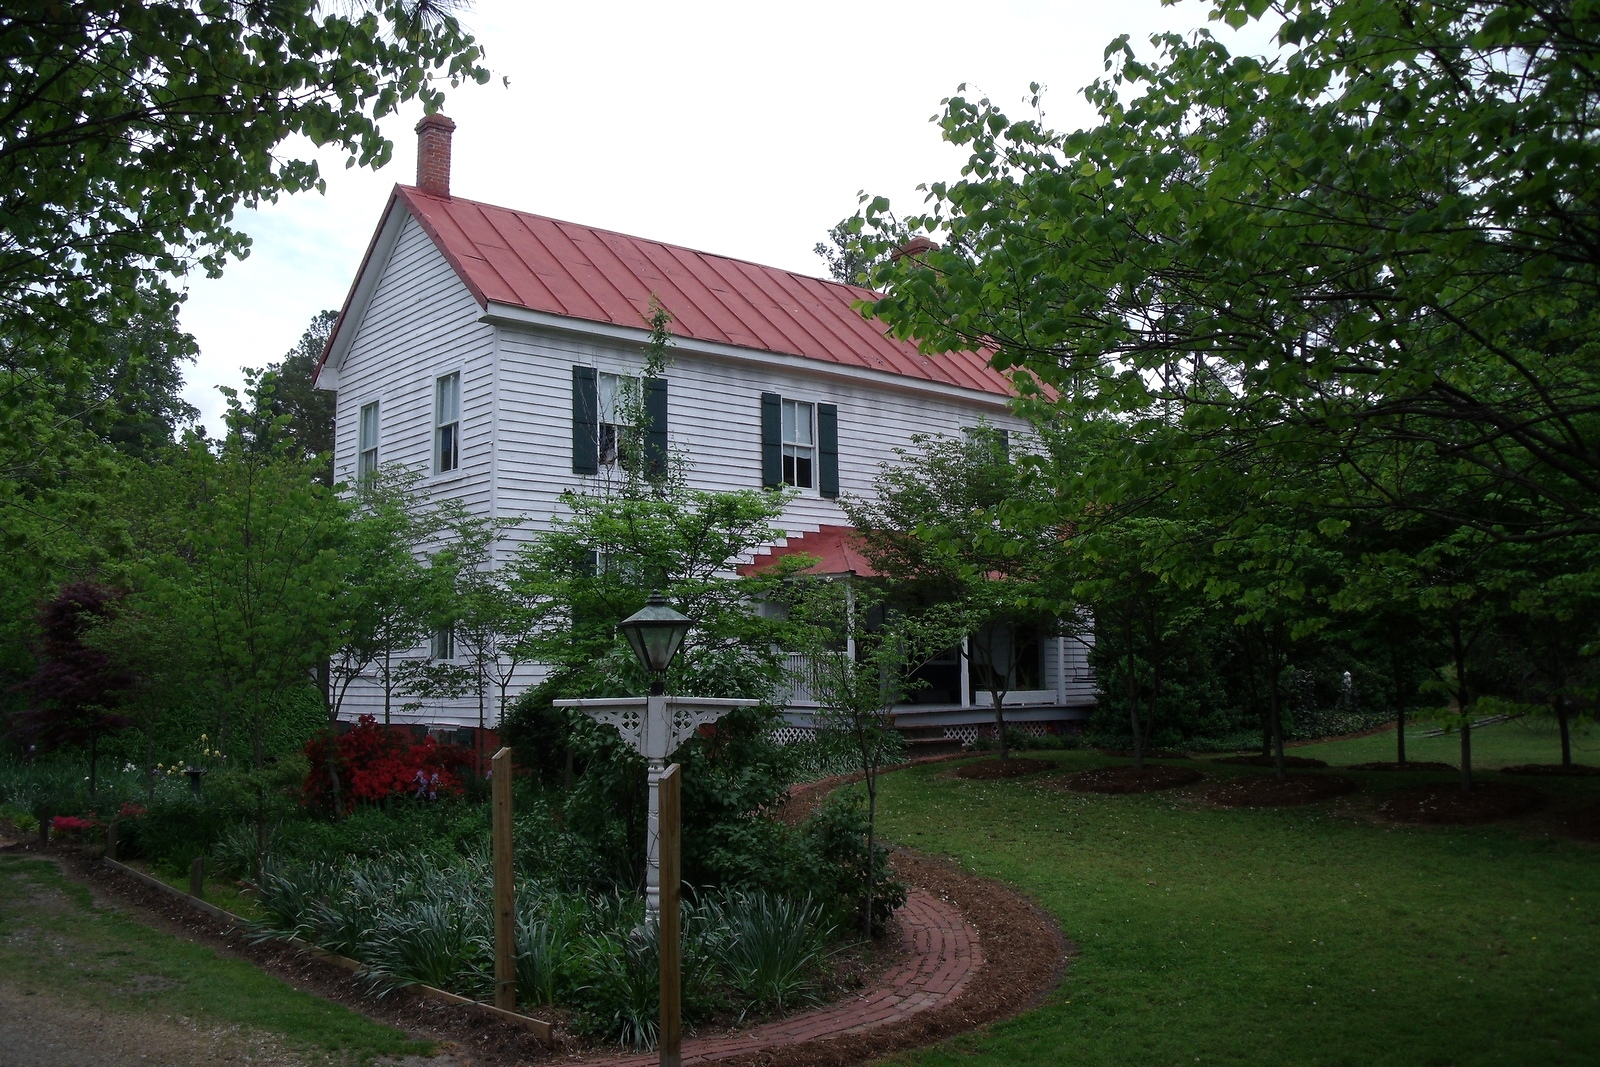 Piney Grove circa 1790, operating today as a B&B.